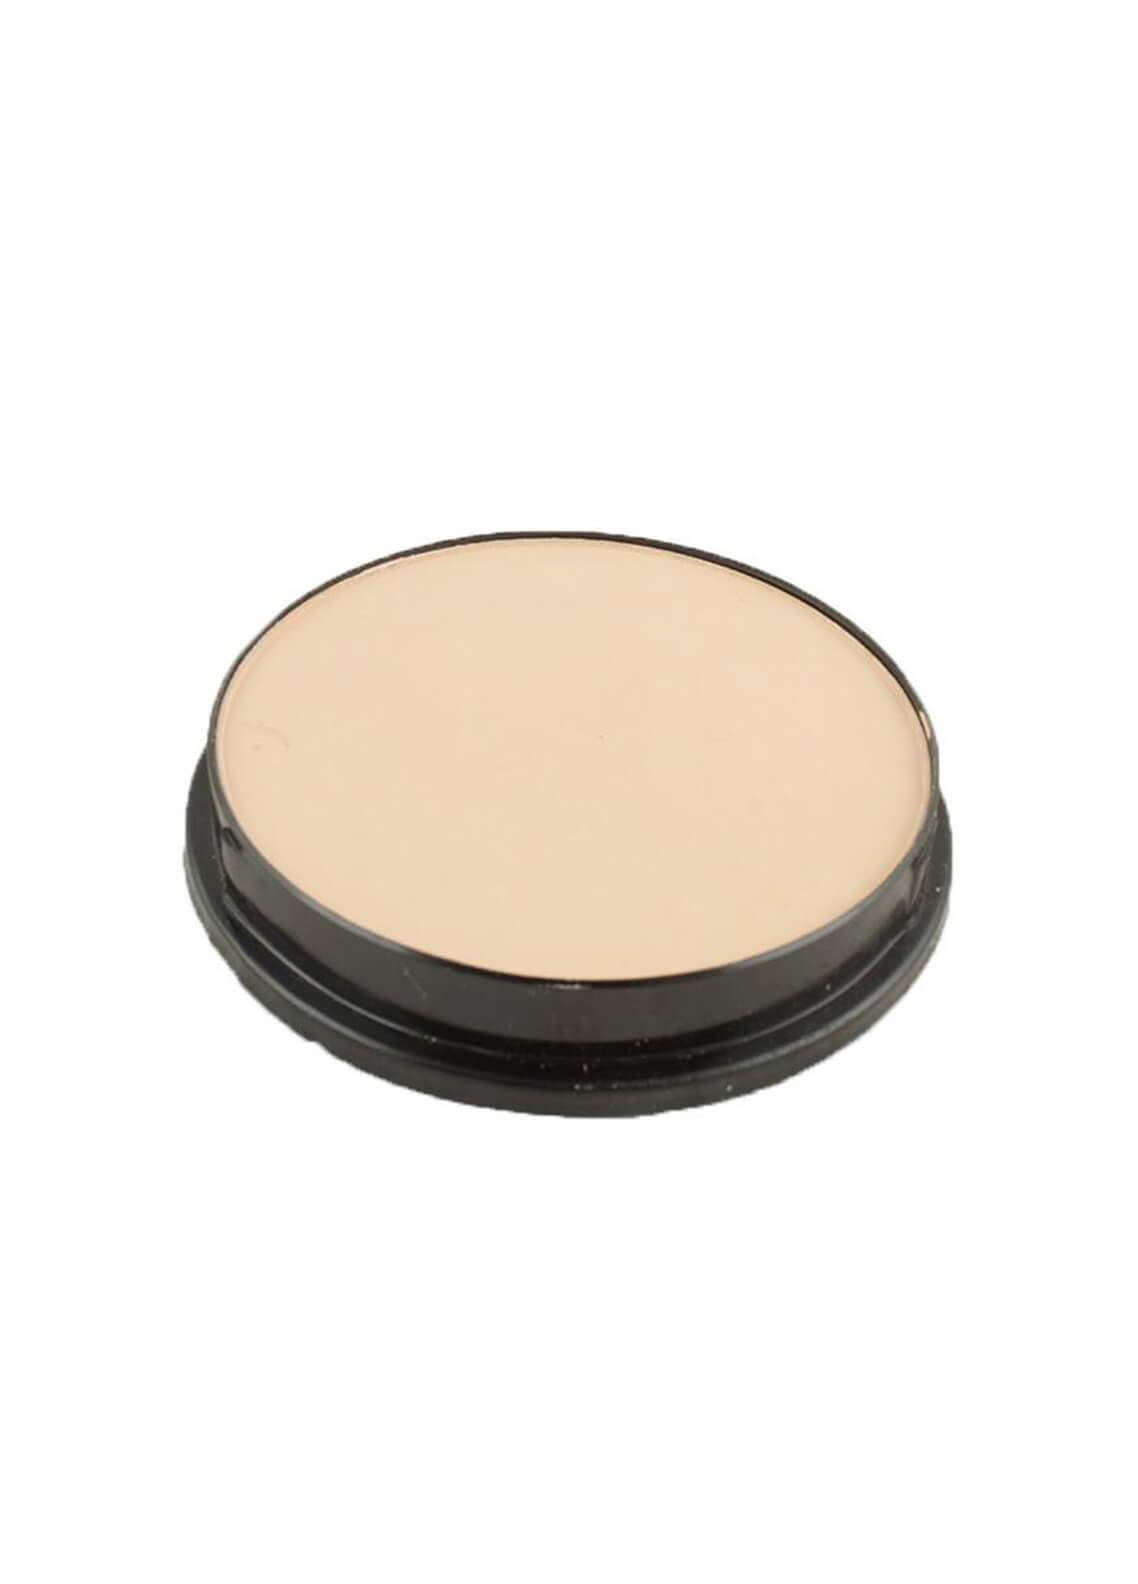 Sophia Asley Oil Free Pan Cake with SPF45 UV Protection - 303